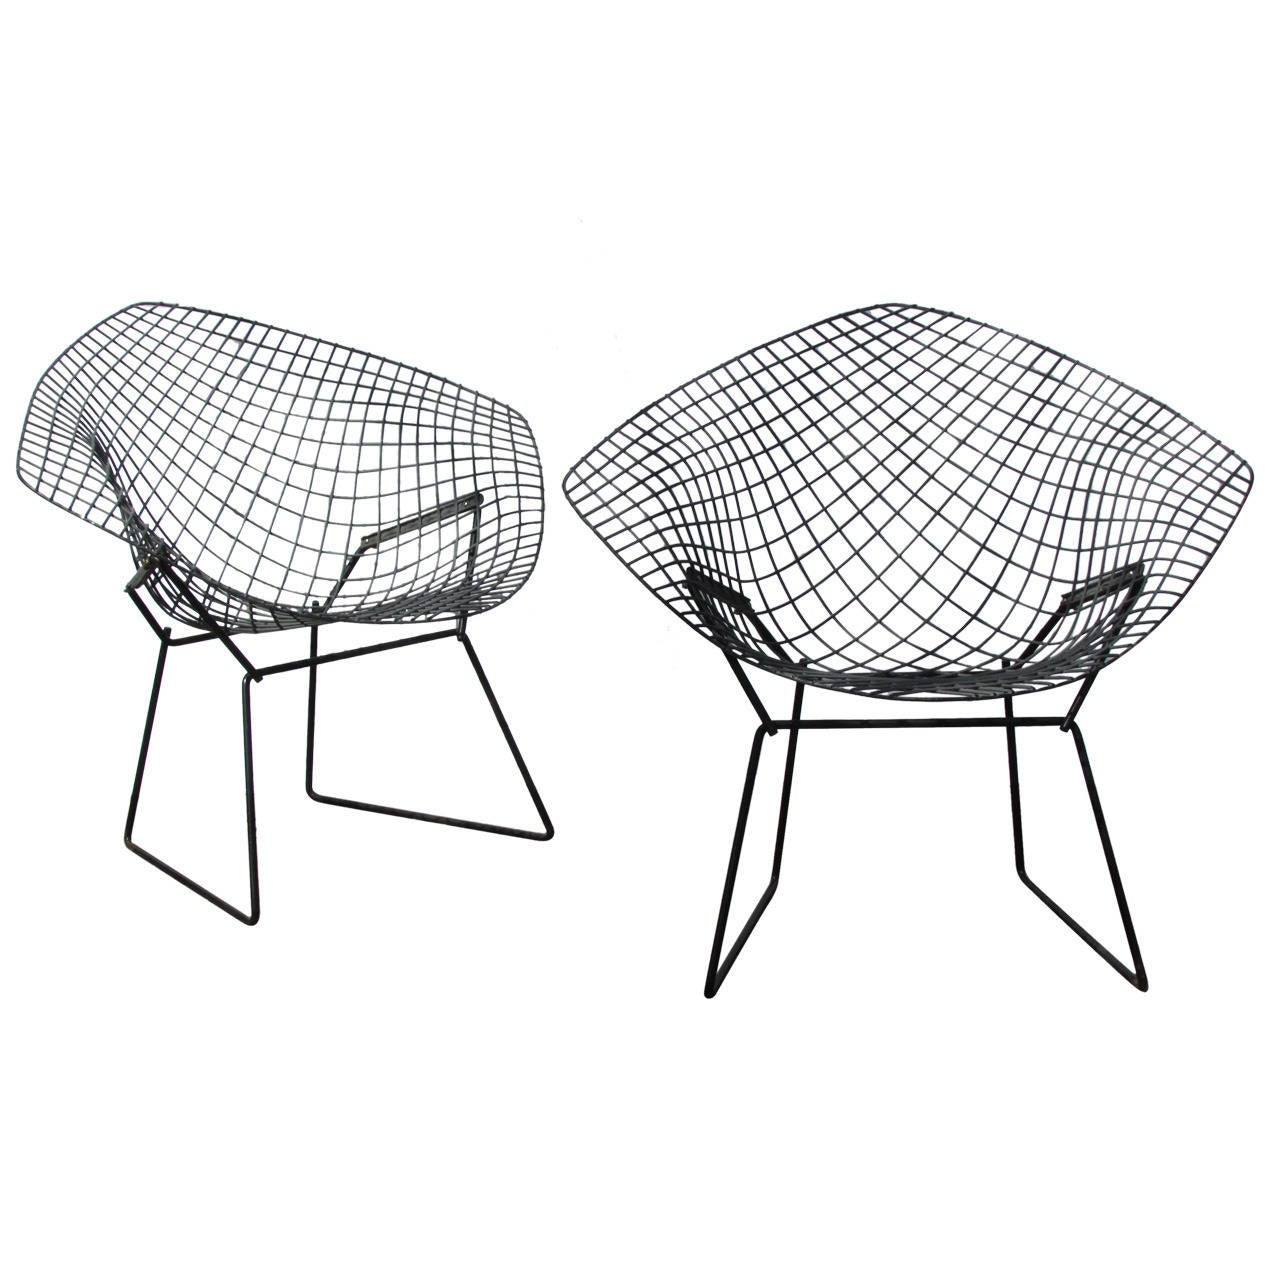 Bertoia diamond chair dimensions - Pair Of Harry Bertoia Diamond Chairs 1